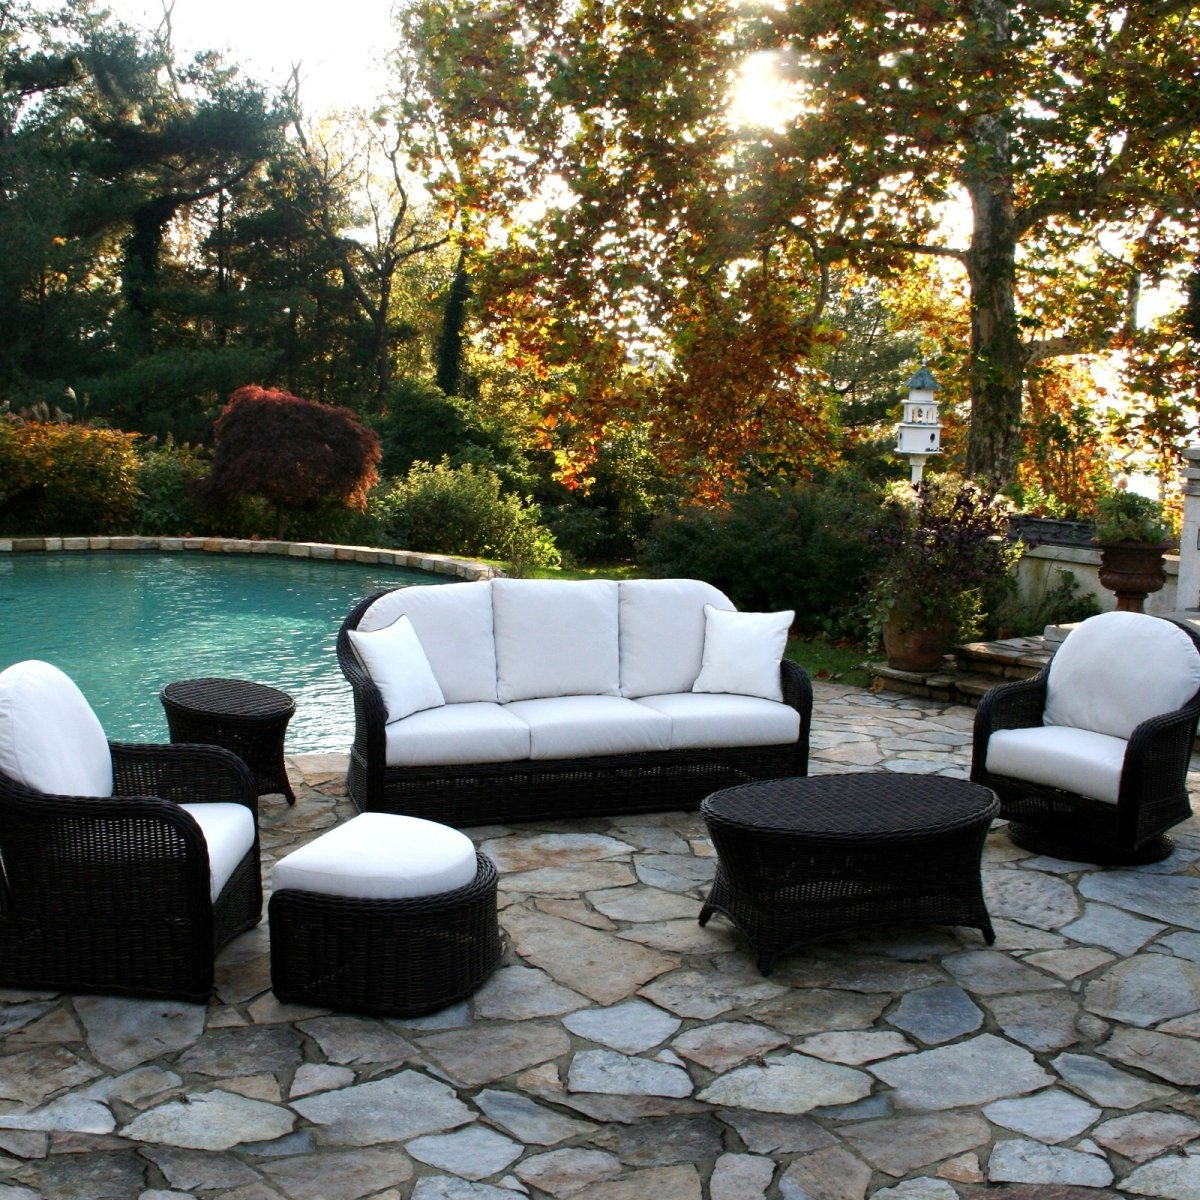 Famous Resin Conversation Patio Sets With Regard To Lovely Conversation Patio Sets Patio Design Inspiration Outdoor (View 5 of 15)